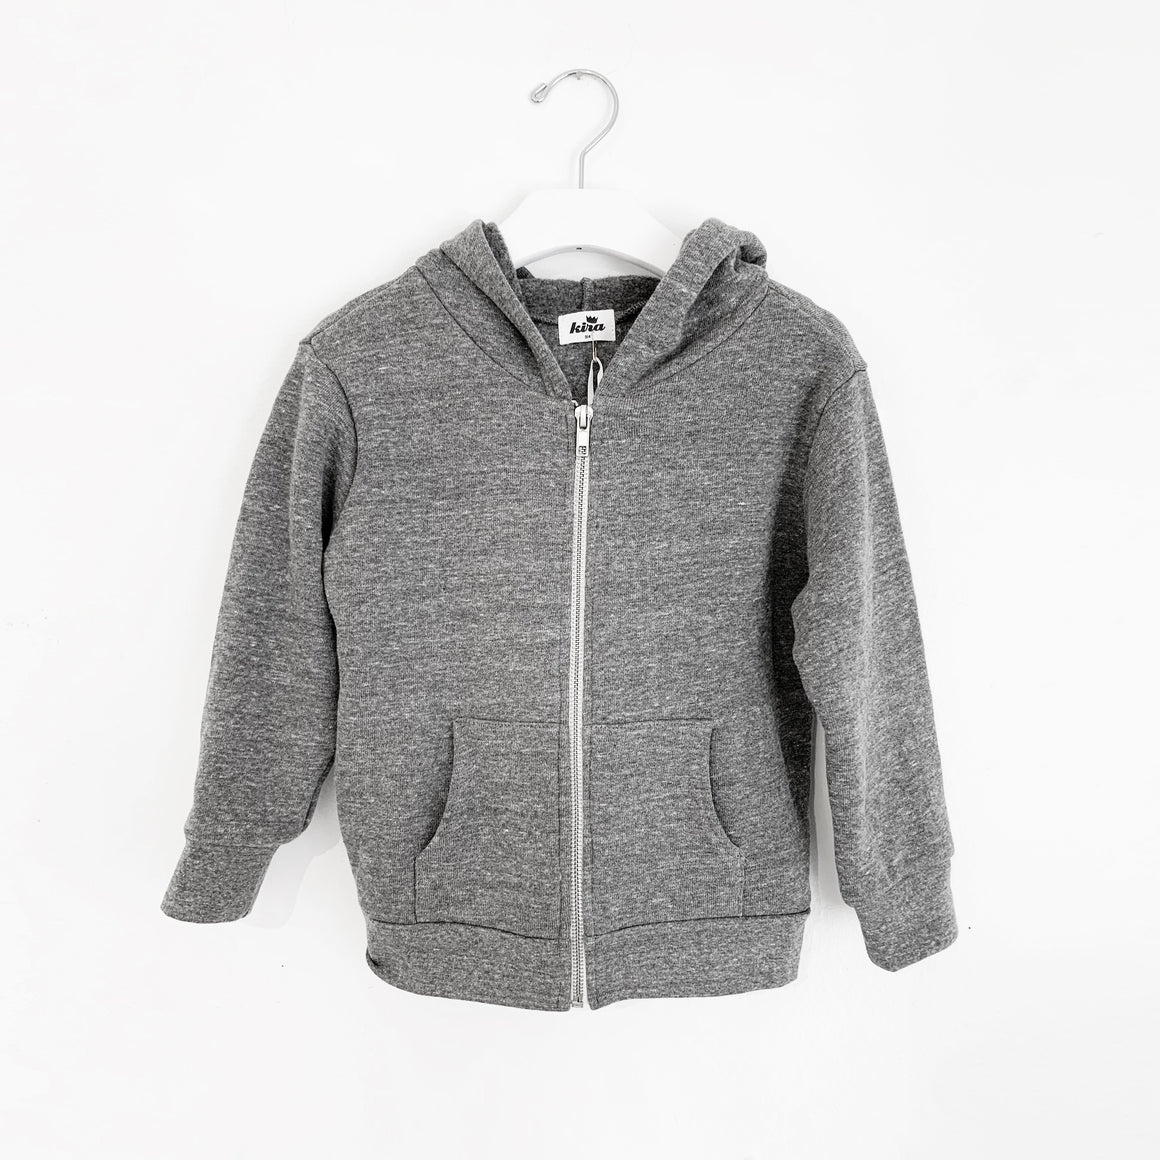 Yay Area Bear Zip Hooded Sweatshirt, Heather Grey